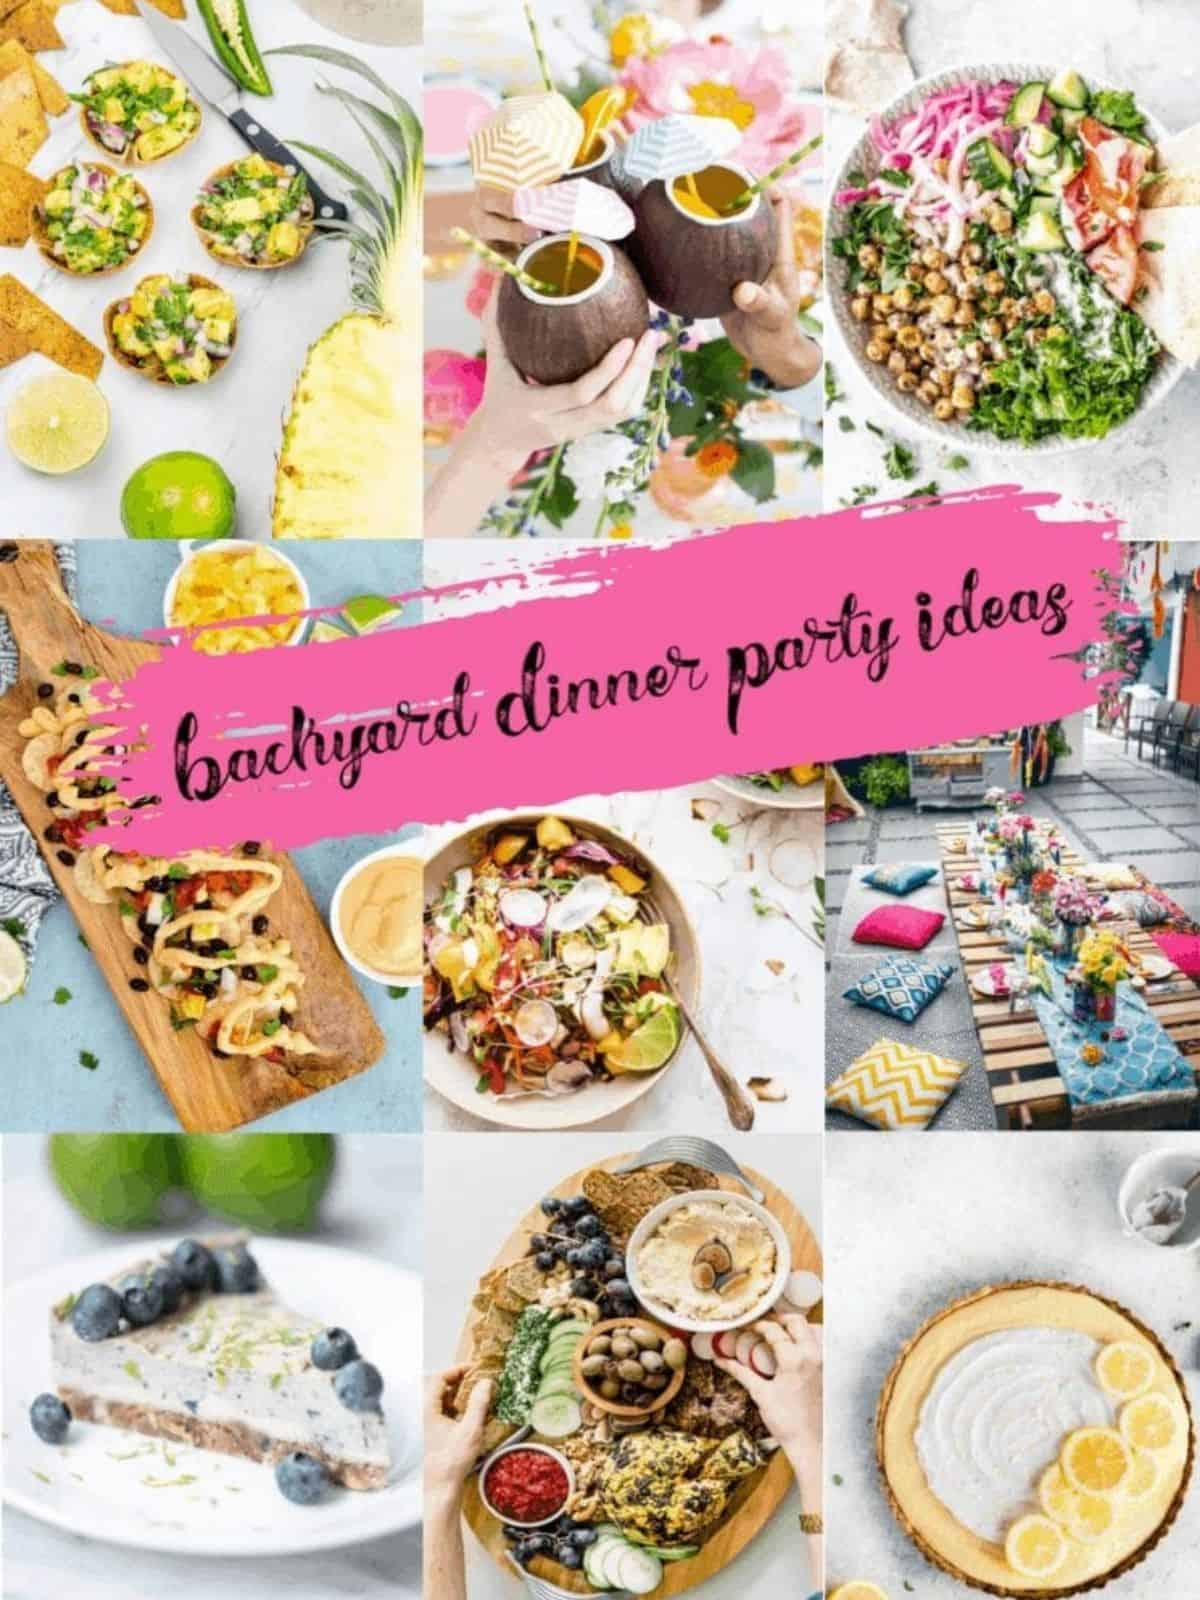 backyard dinner party food ideas and table settings